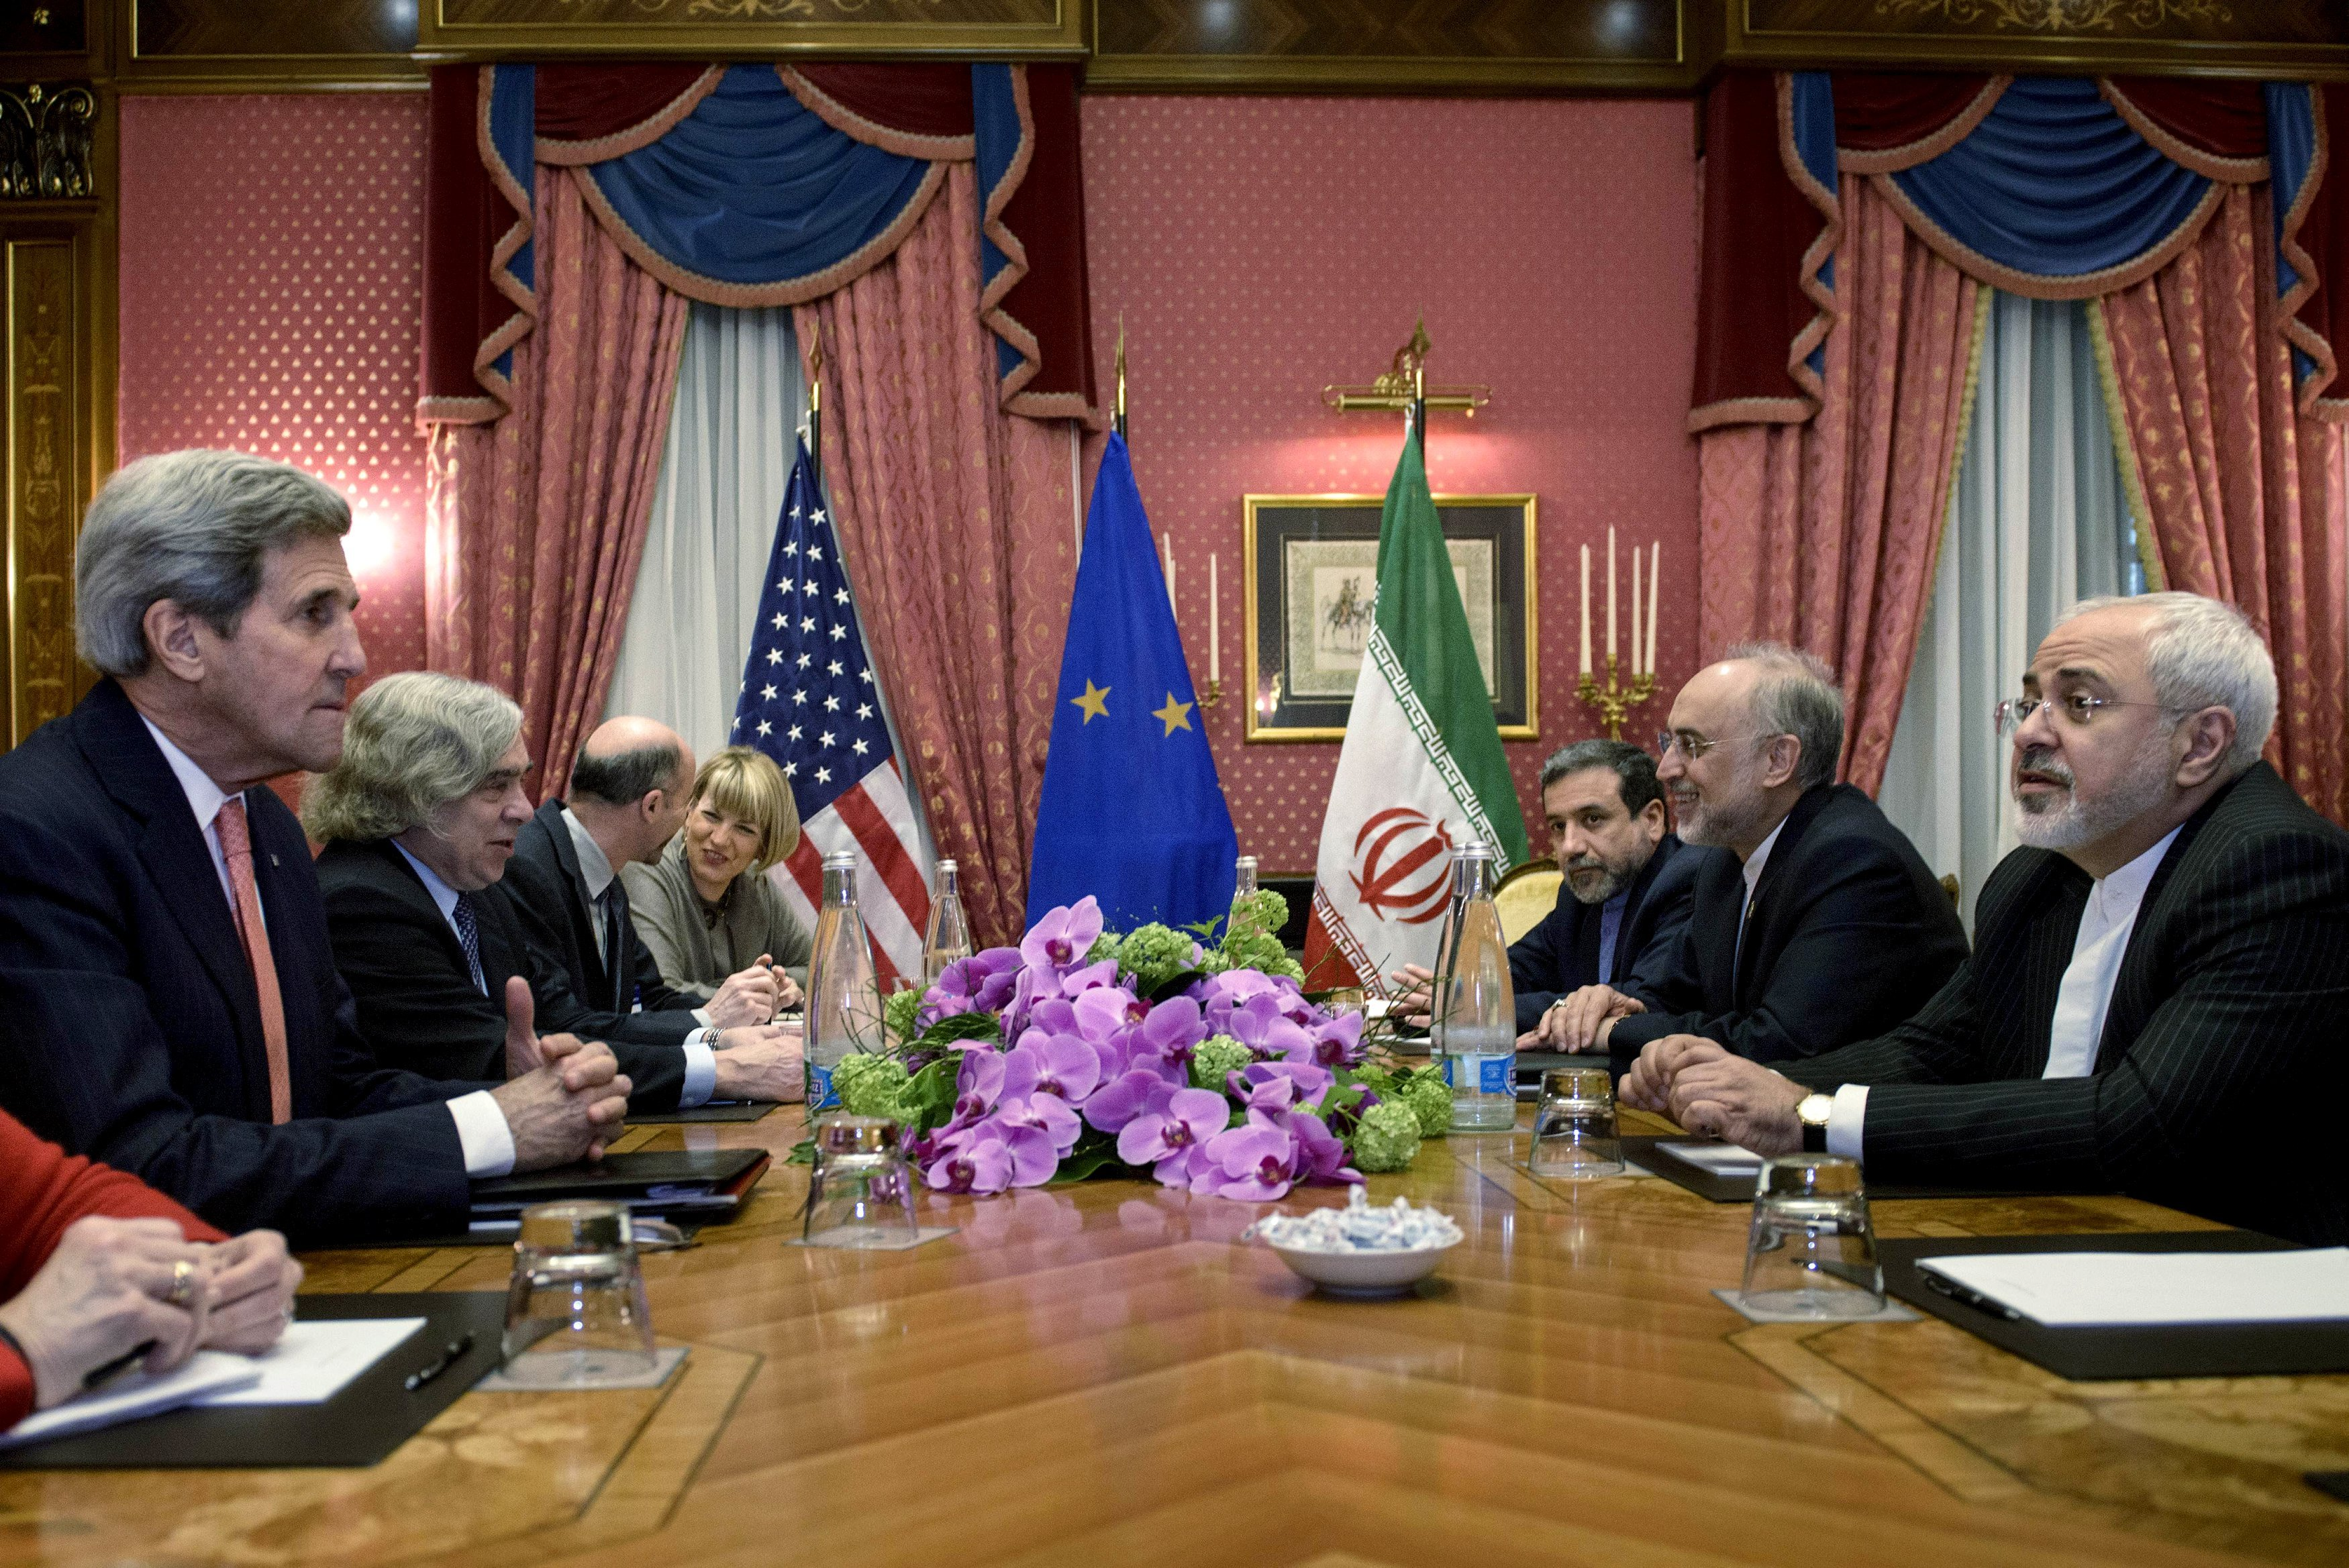 Secretary of State John Kerry, Iranian Foreign Minister Javad Zarif and others wait for a meeting at the Beau Rivage Palace Hotel on March 27, 2015 in Lausanne, Switzerland.